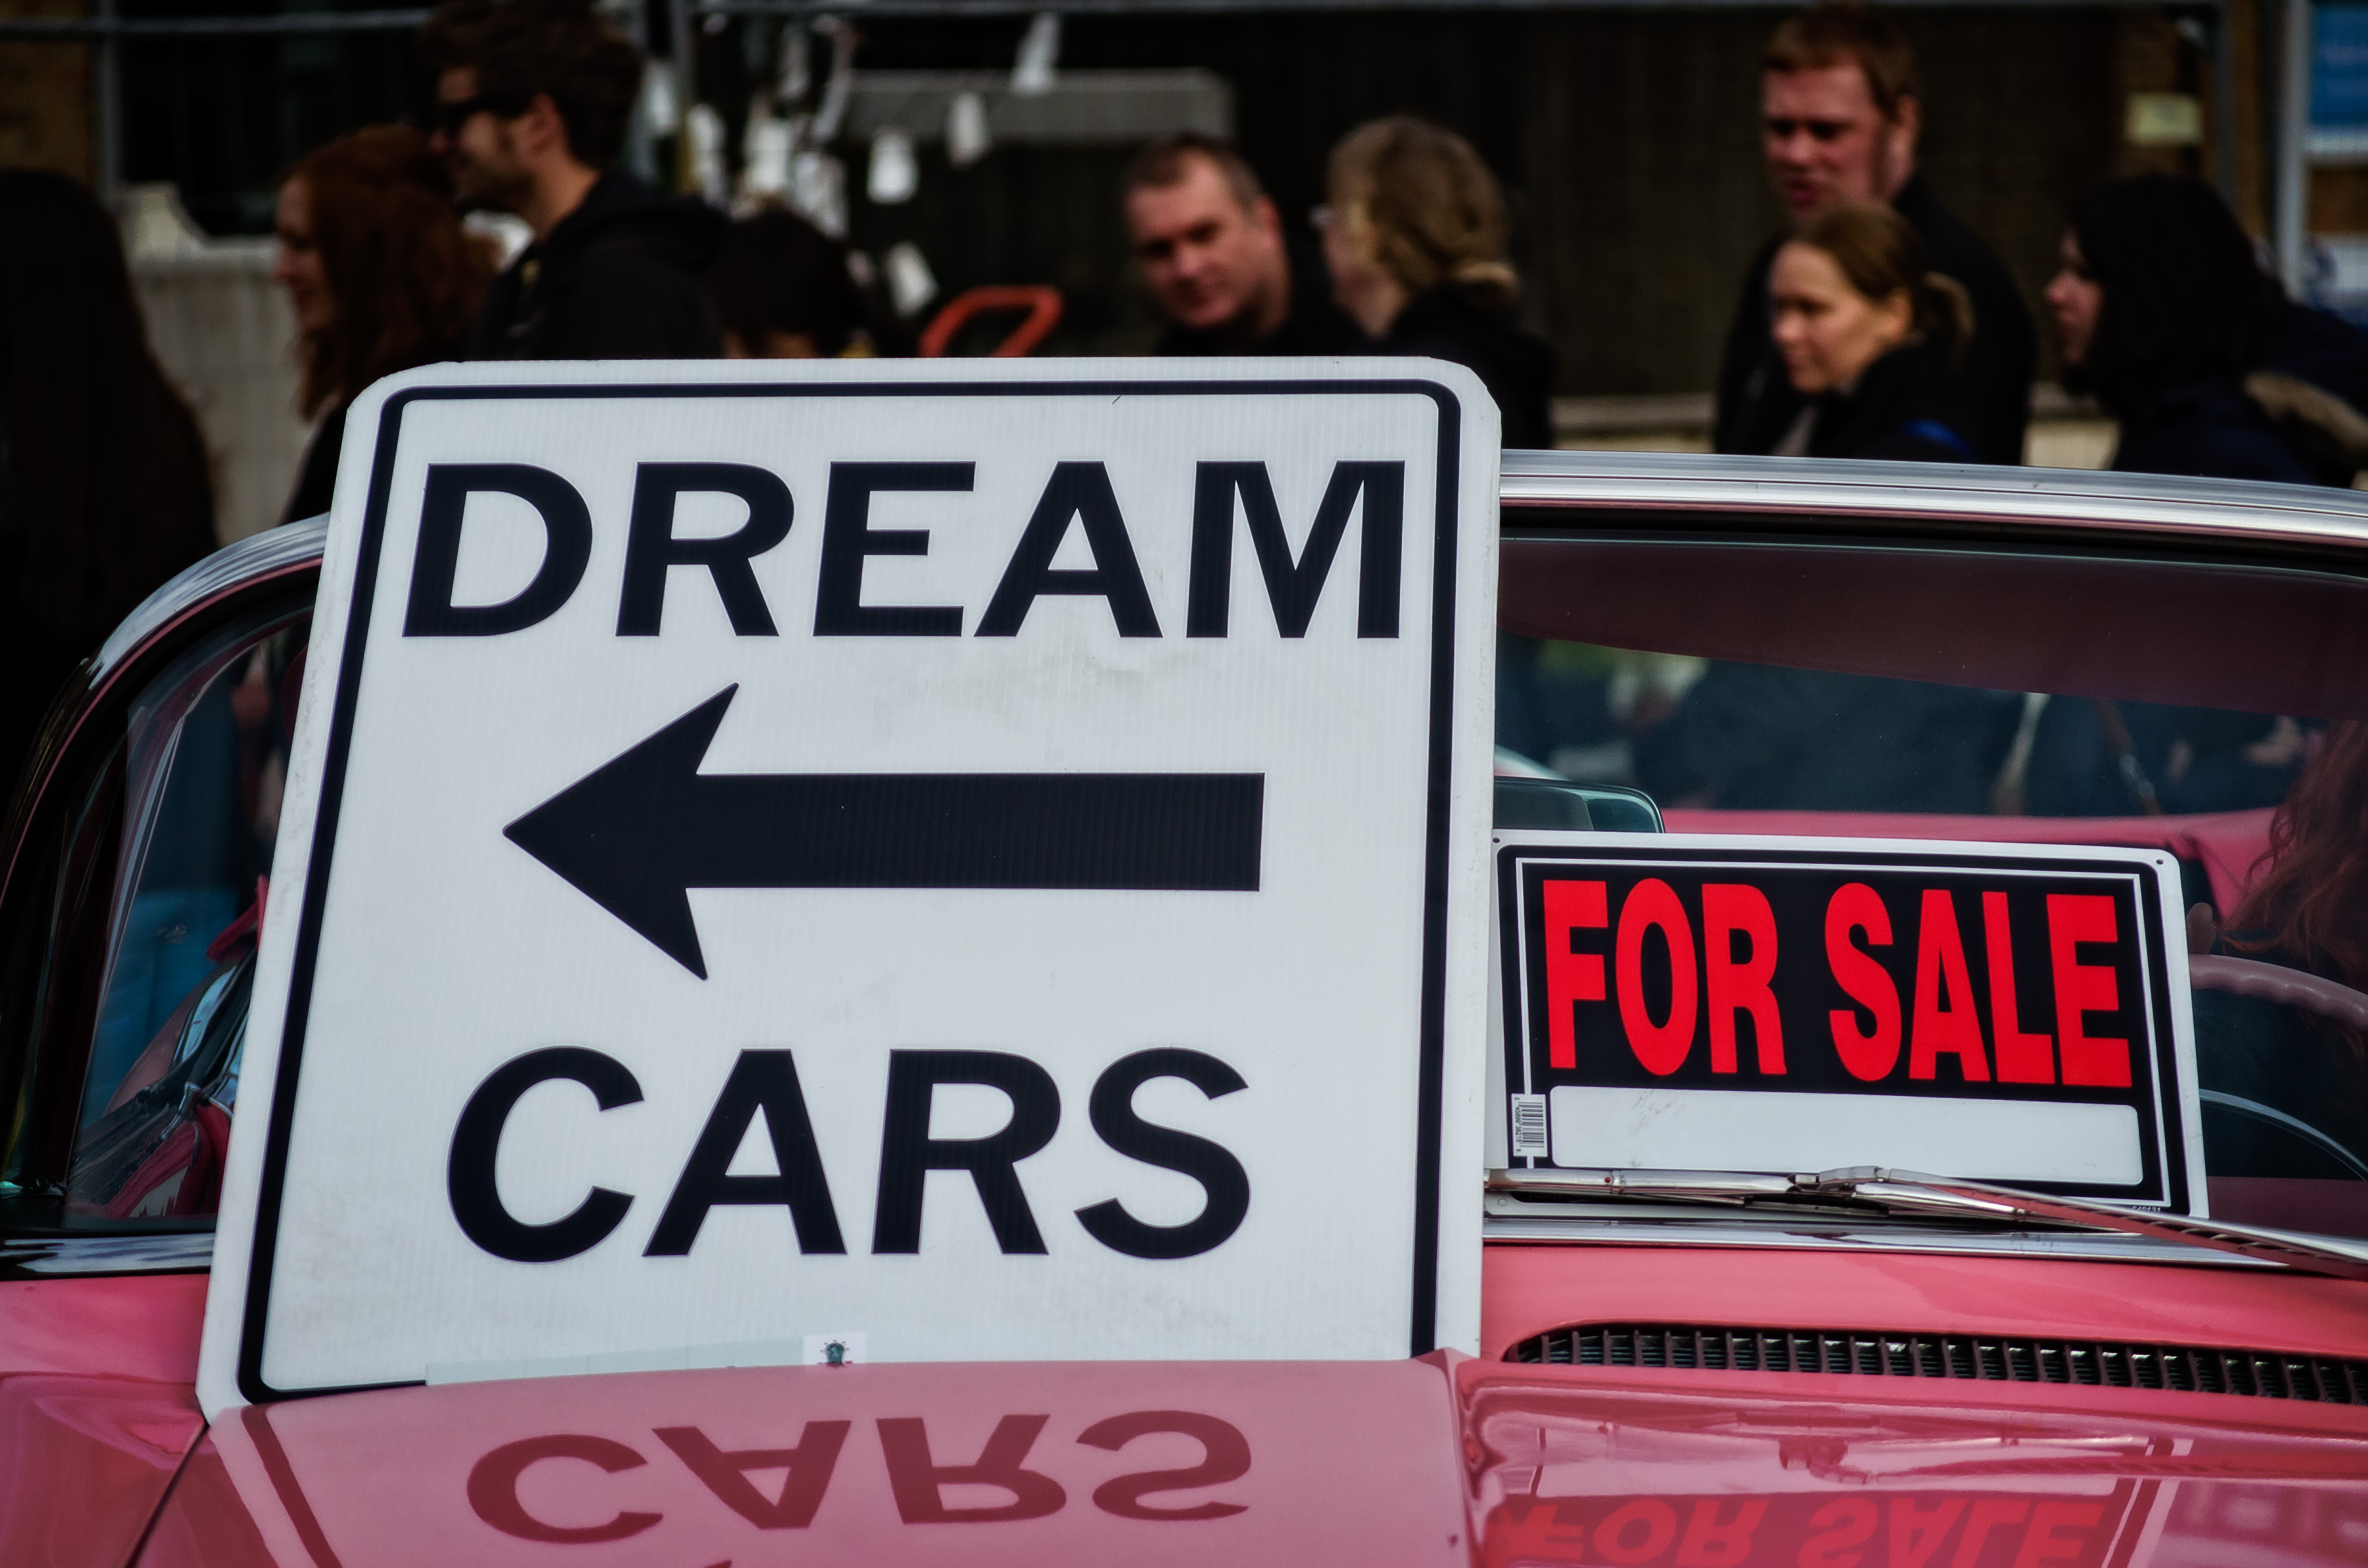 Dream cars sign